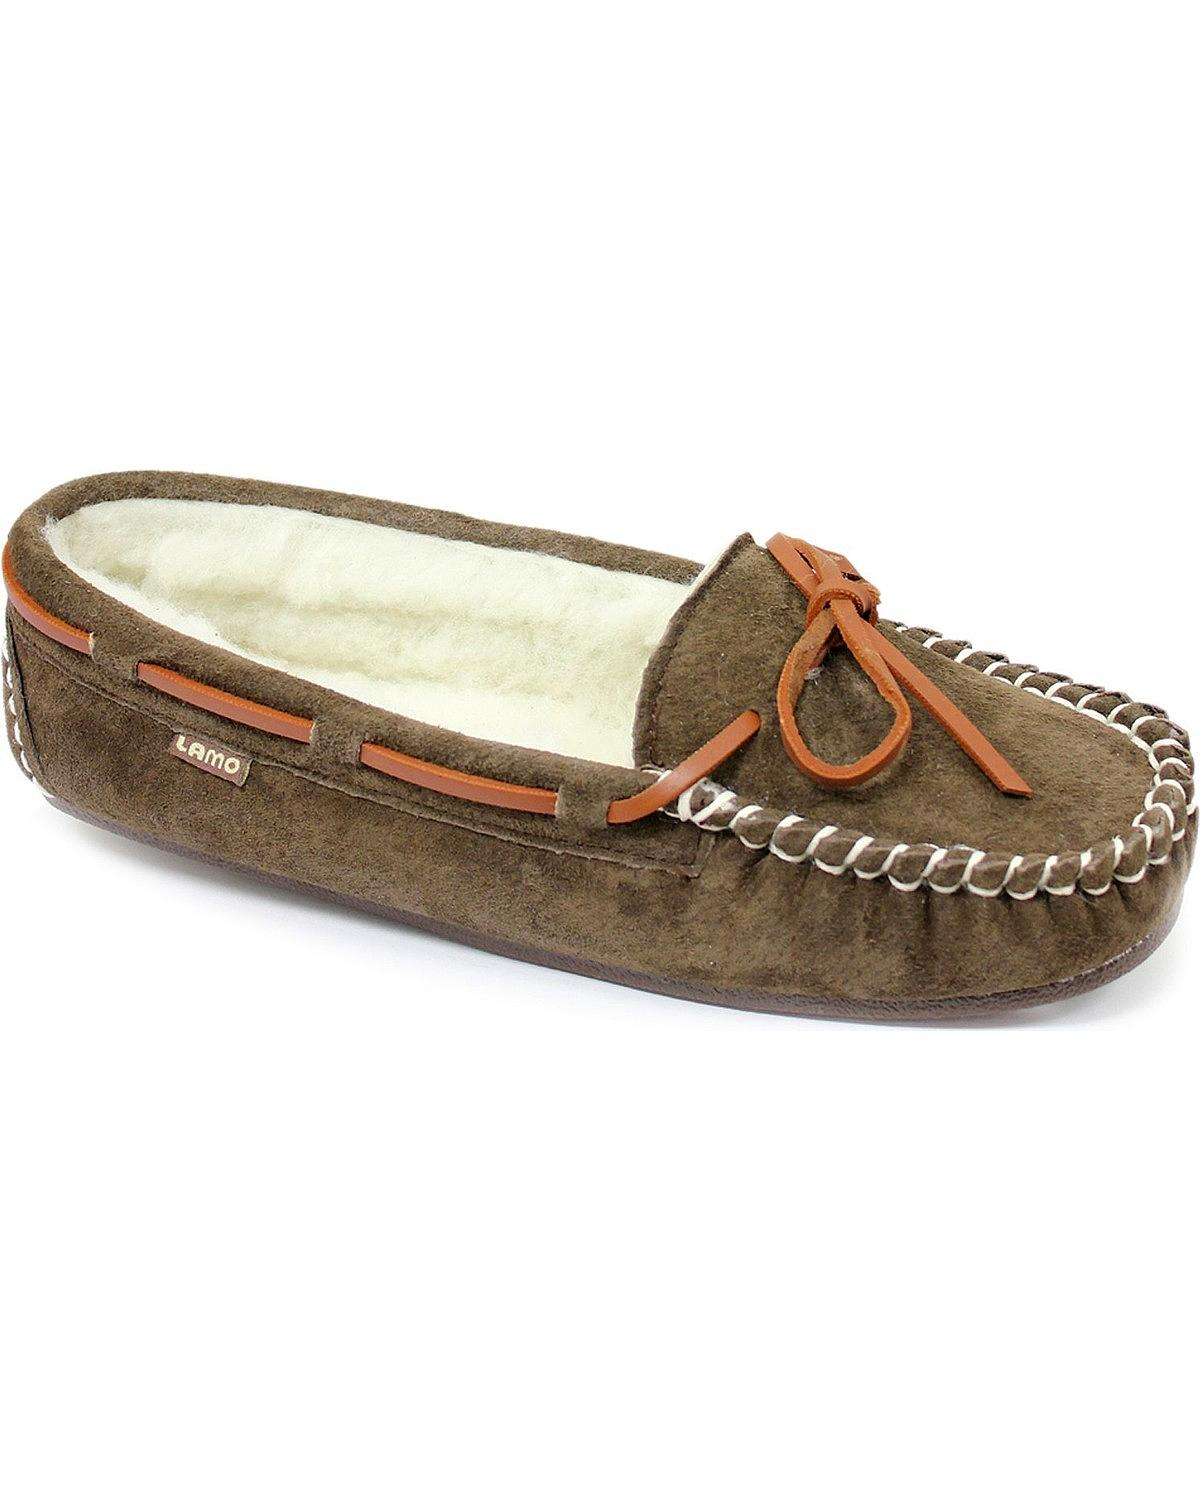 Lamo Footwear Women's Britain Moccasins Ew1360-92 by Overstock